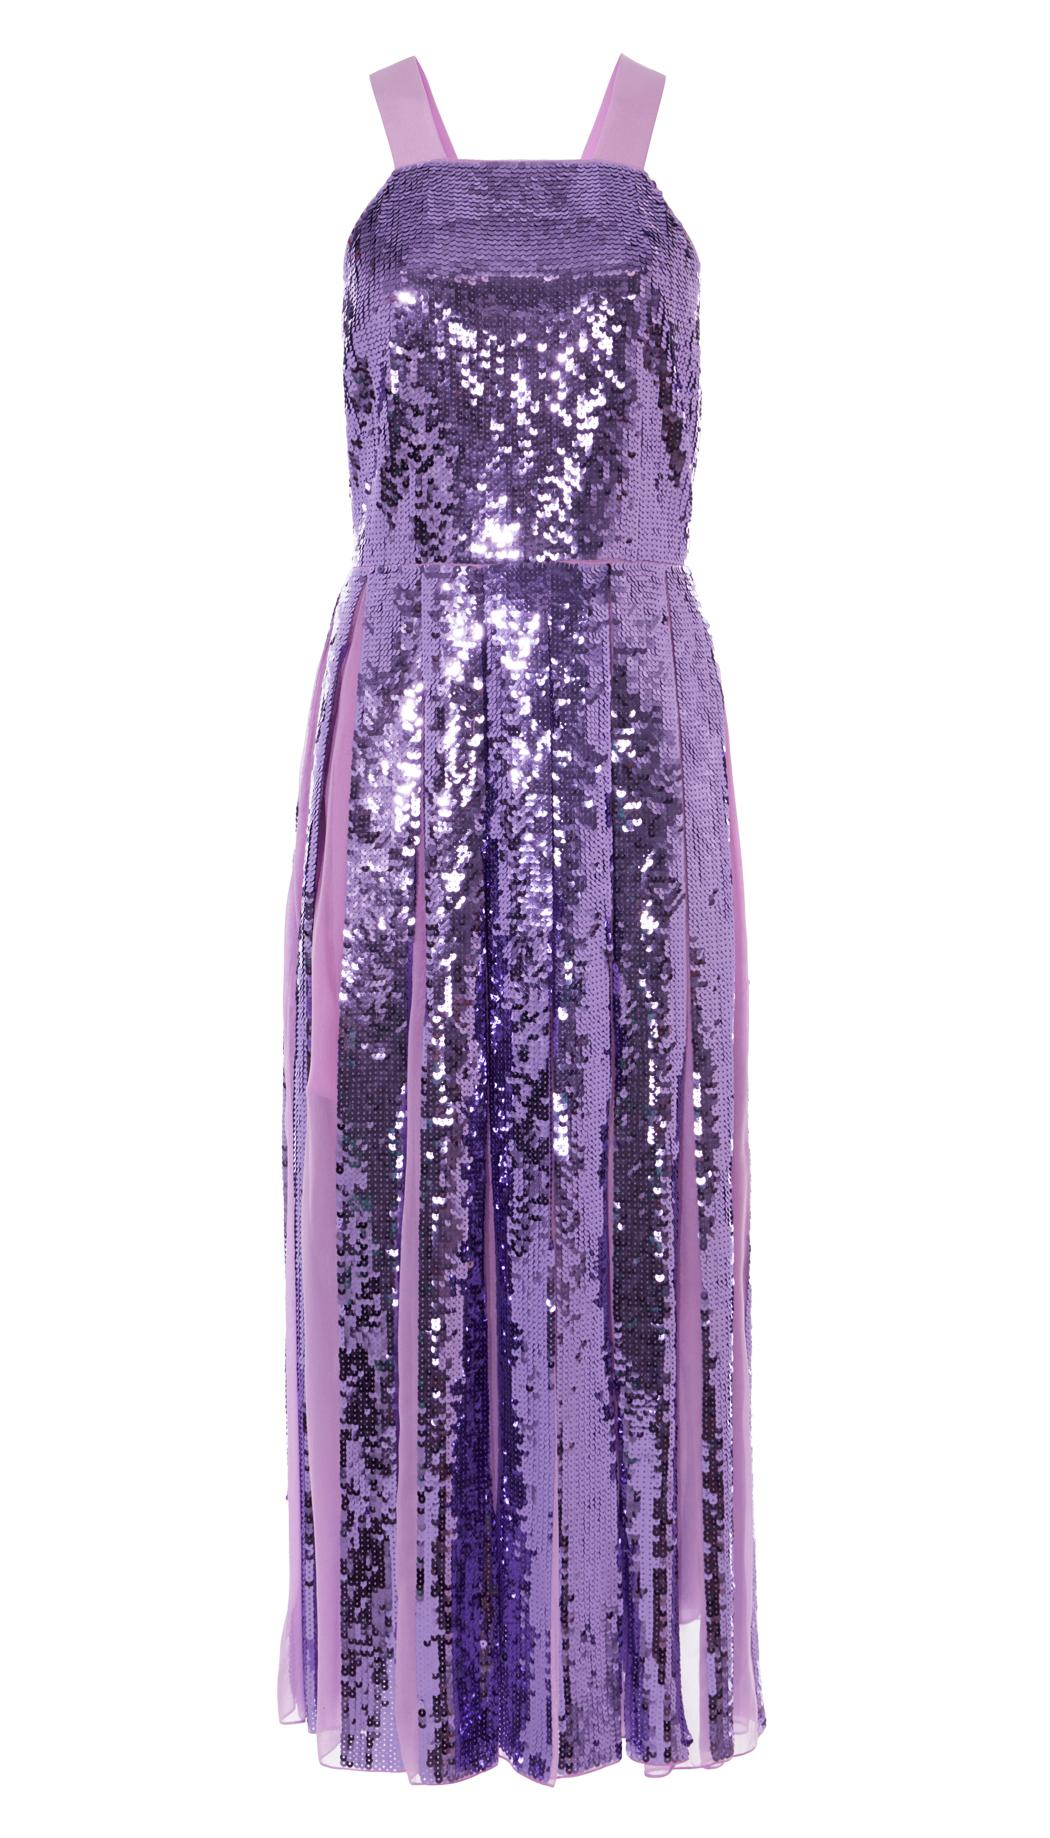 941d77c90d8 Lyst - Tibi Sequined Overall Dress in Purple